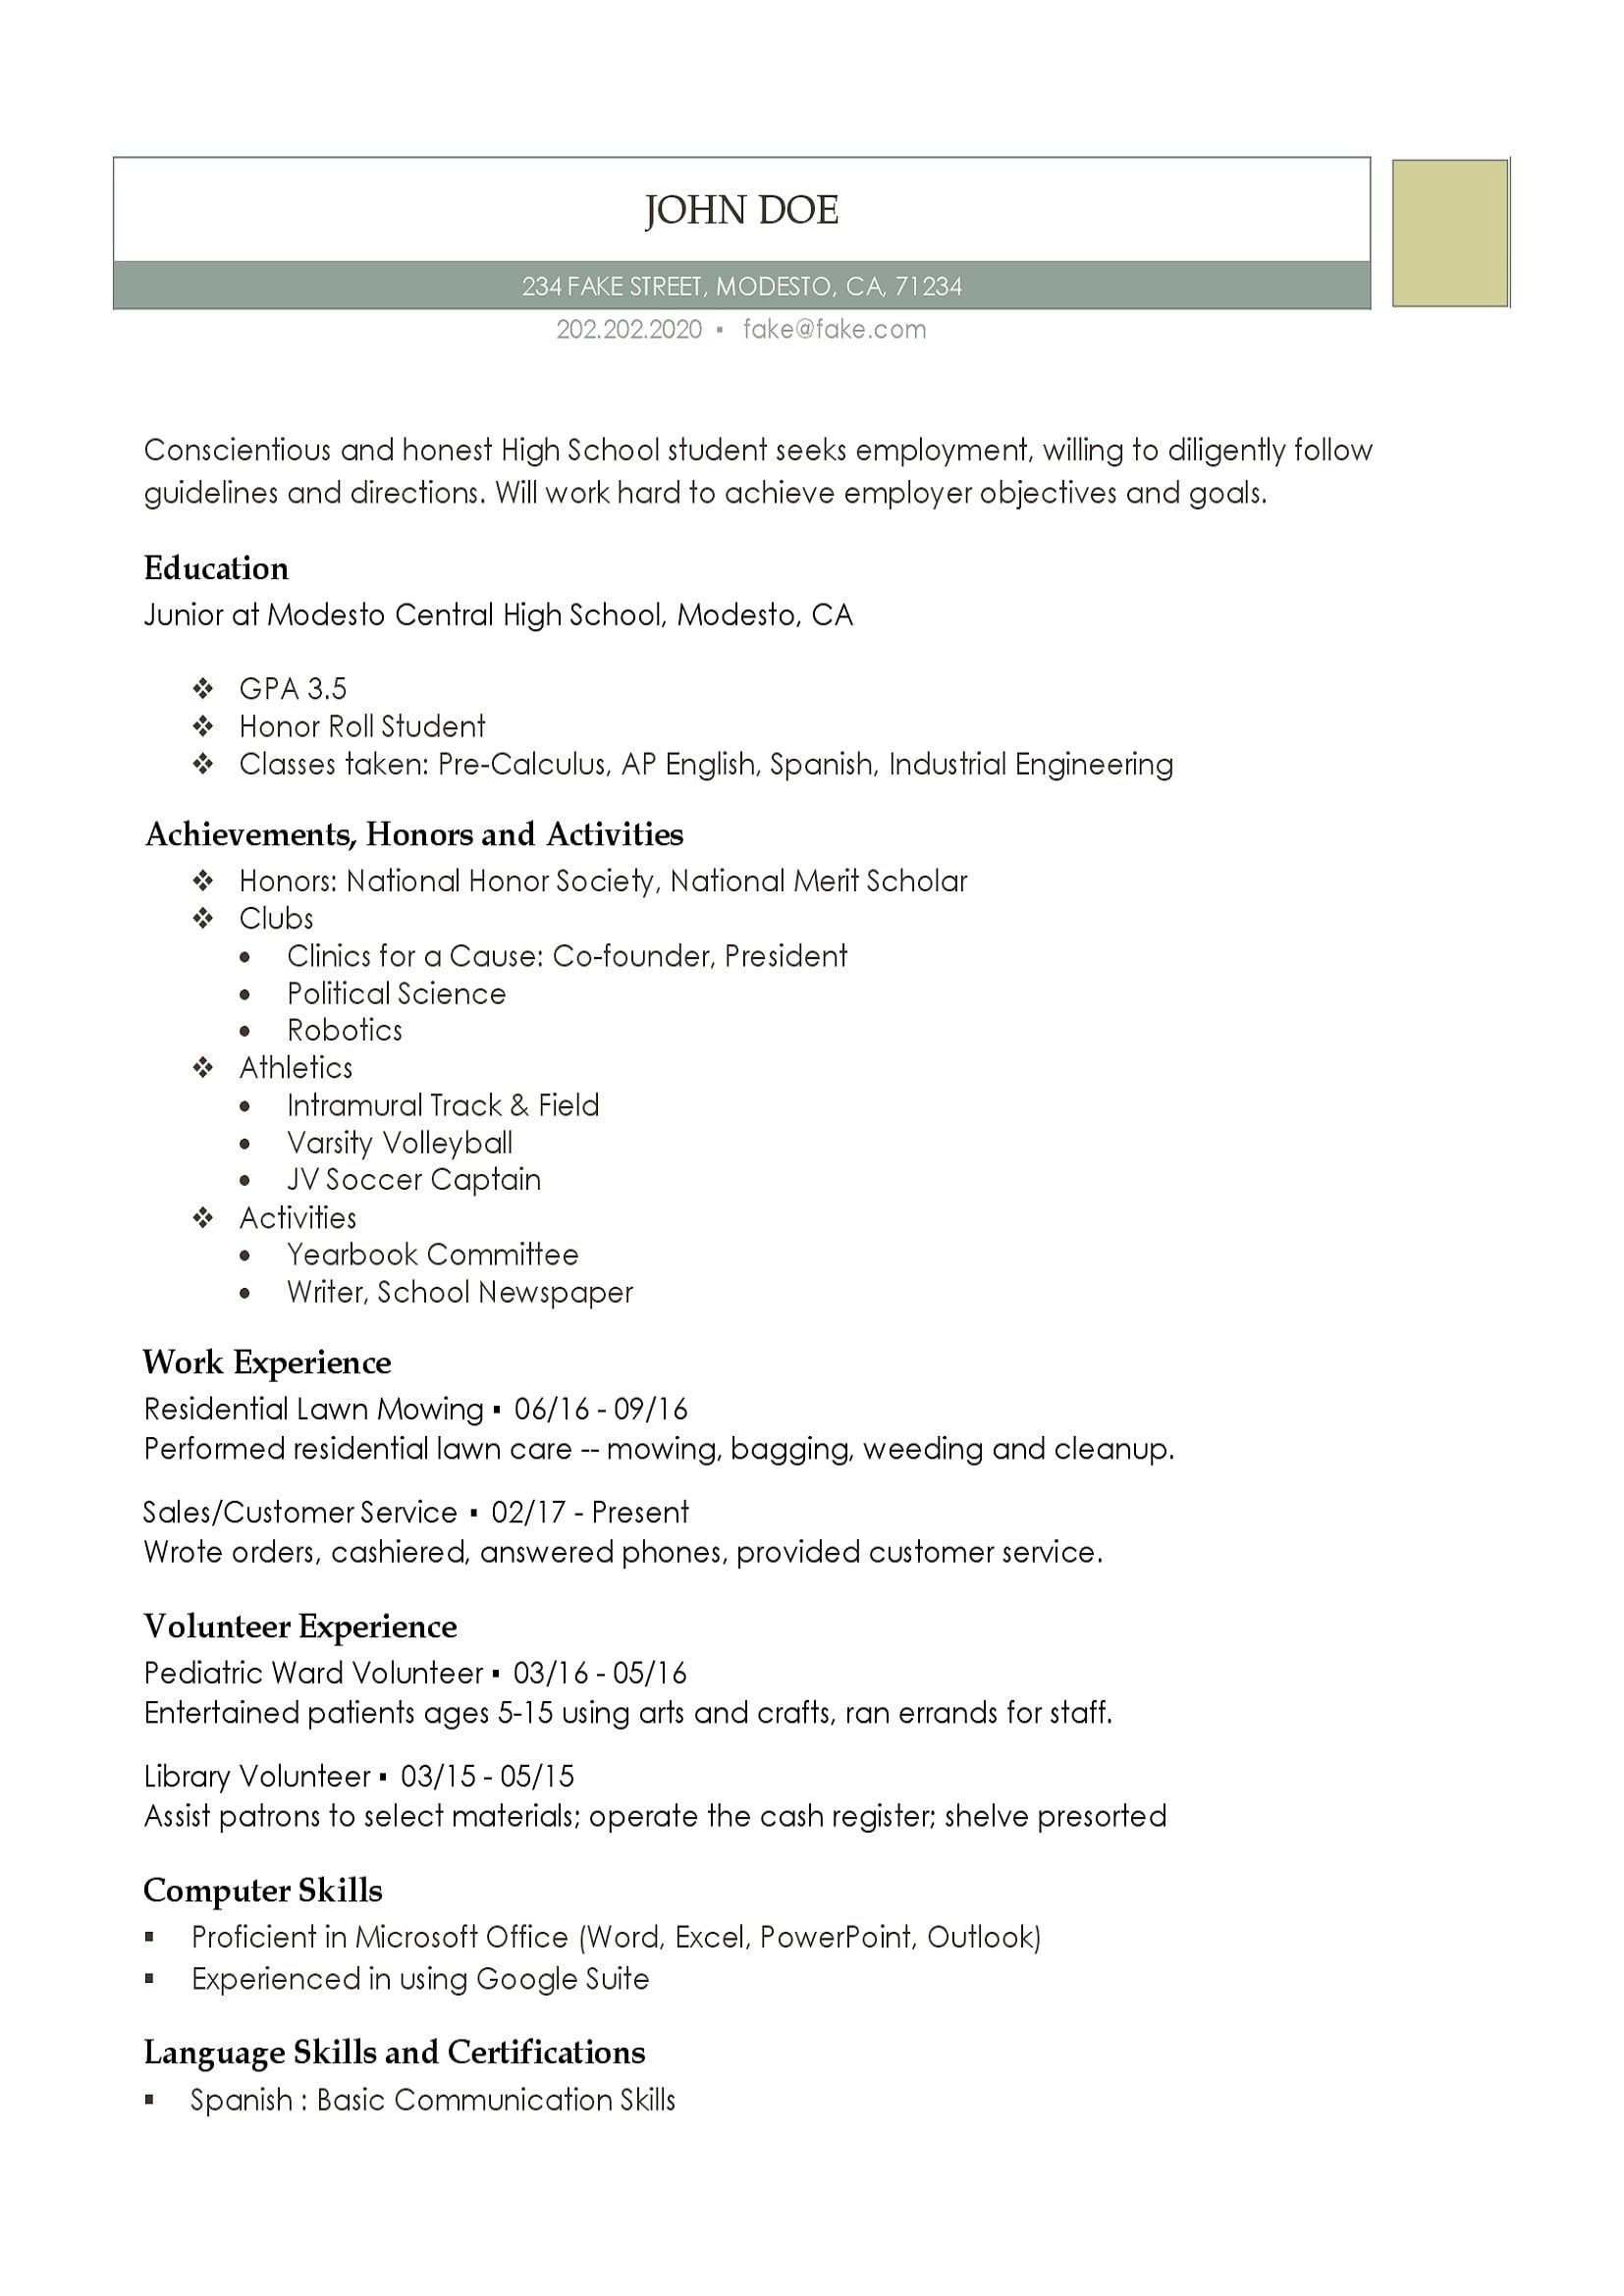 003 Unusual Basic Student Resume Template Picture  Templates High School Google DocFull